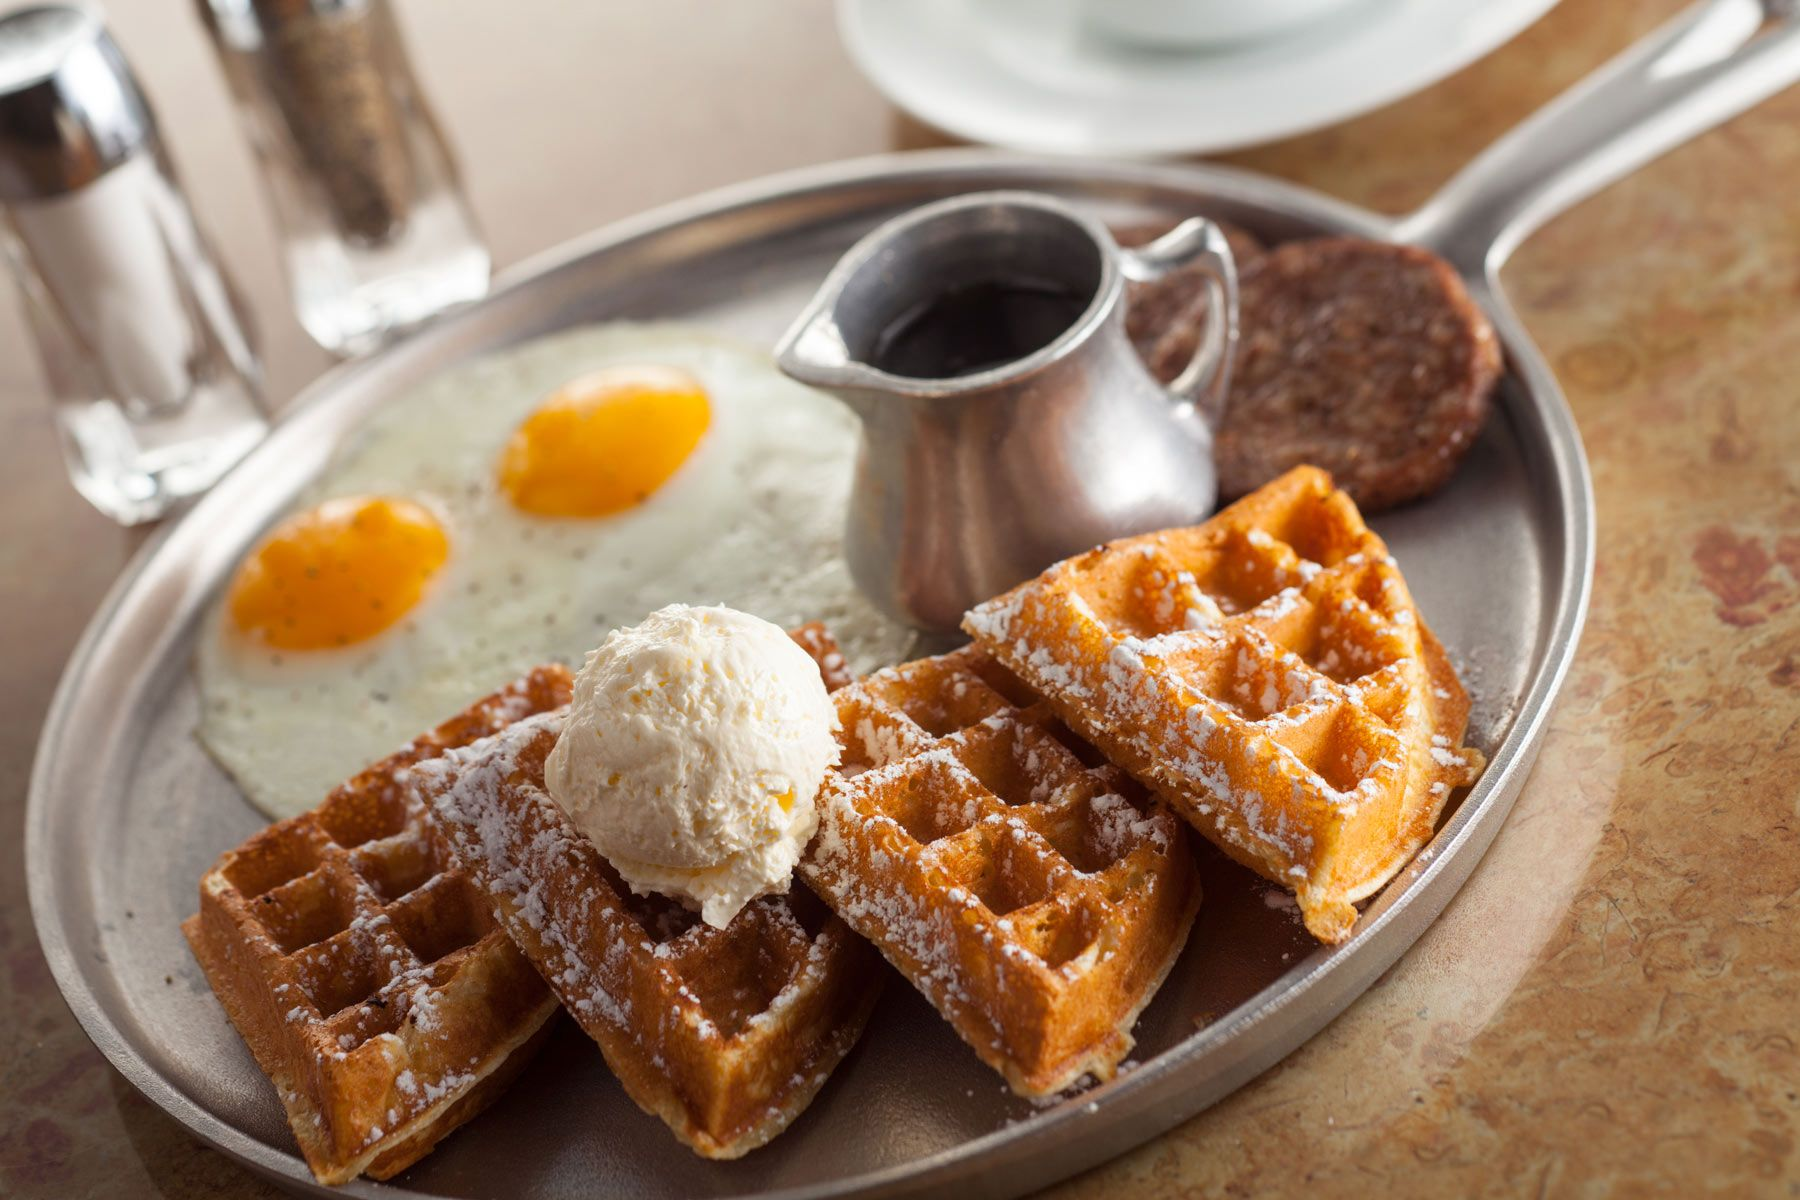 Eggs-over-easy-sausage-patty-waffles-and-honey-butter-syrup-Gun-Lake-Casino_380.jpg